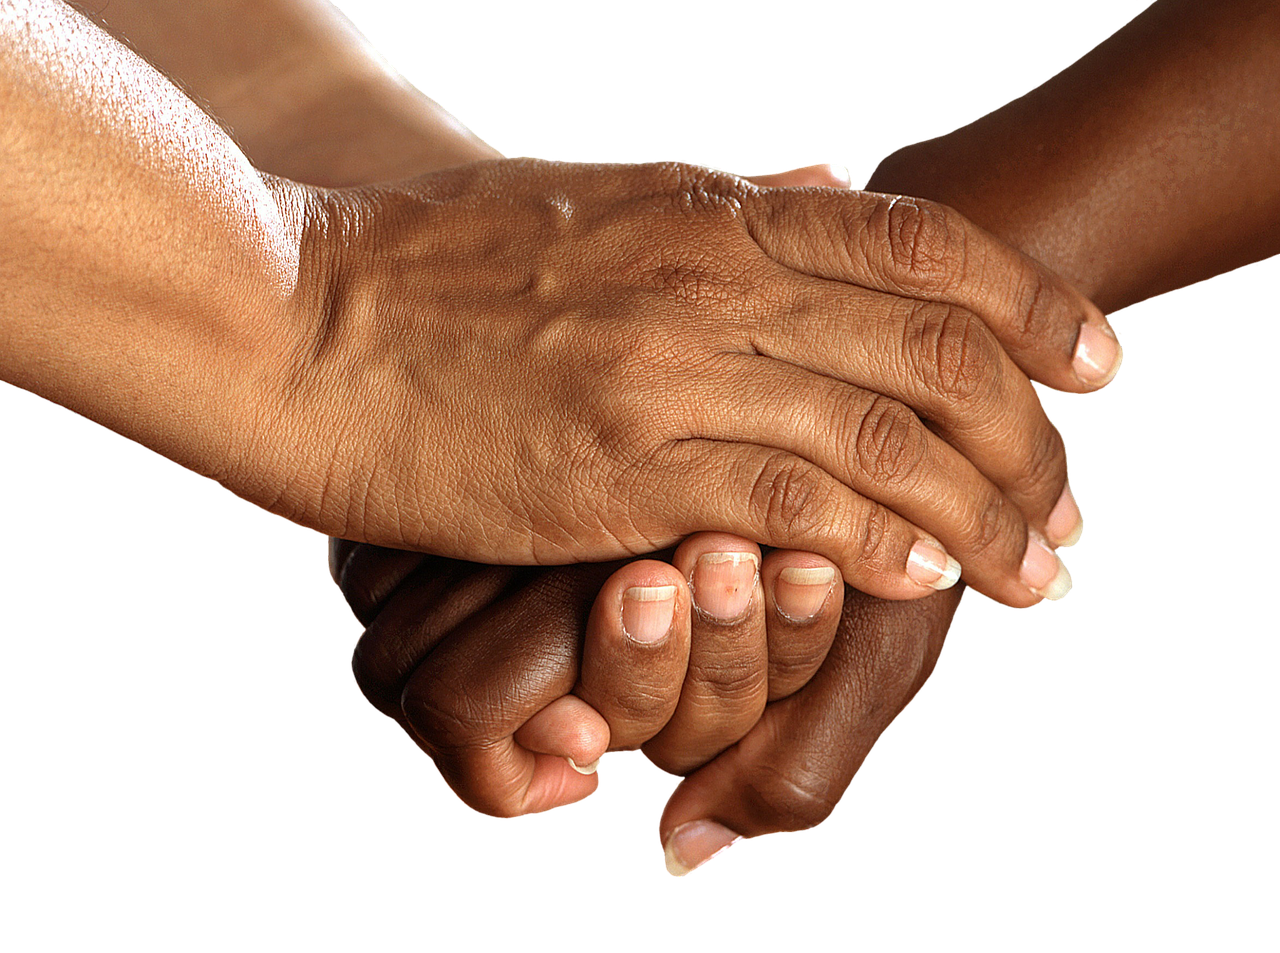 hands,shake,encouragement,together,help,helping hand,isolated,exemption,cut out,cropping,free pictures, free photos, free images, royalty free, free illustrations, public domain